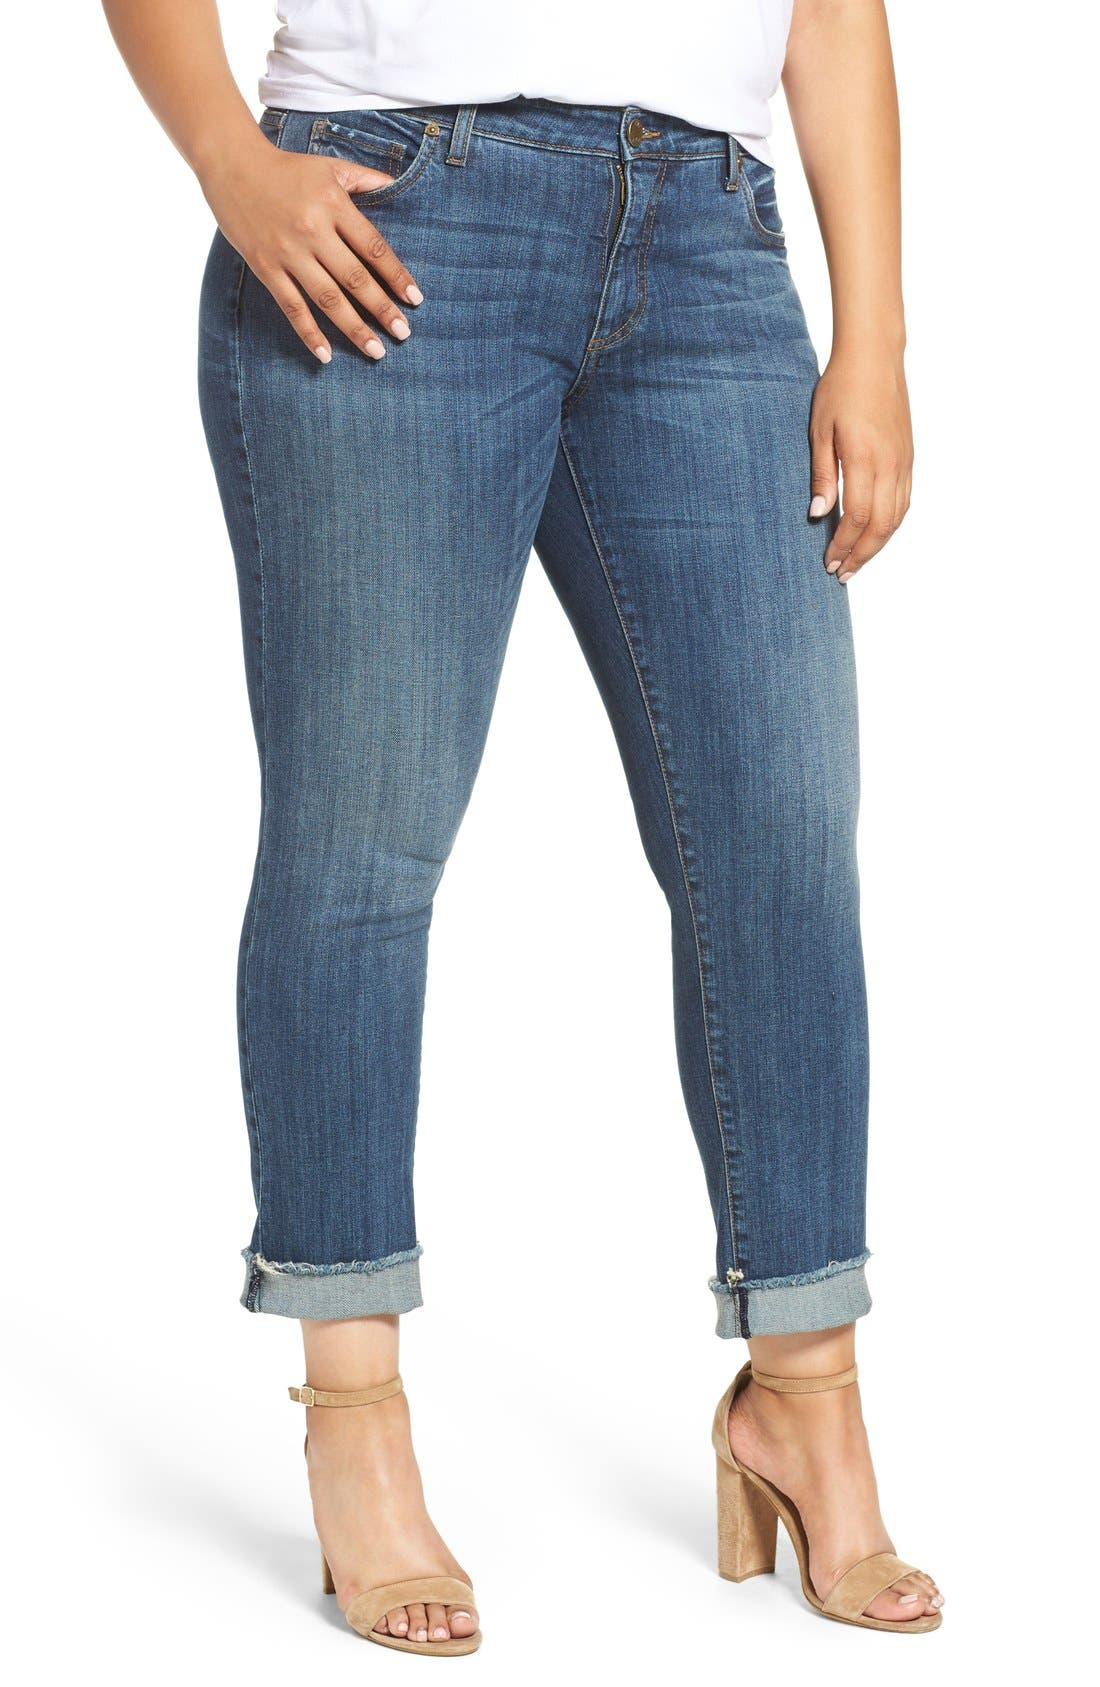 Main Image - KUT from the Kloth Stretch Roll Cuff Ankle Jeans (Valued) (Plus Size)